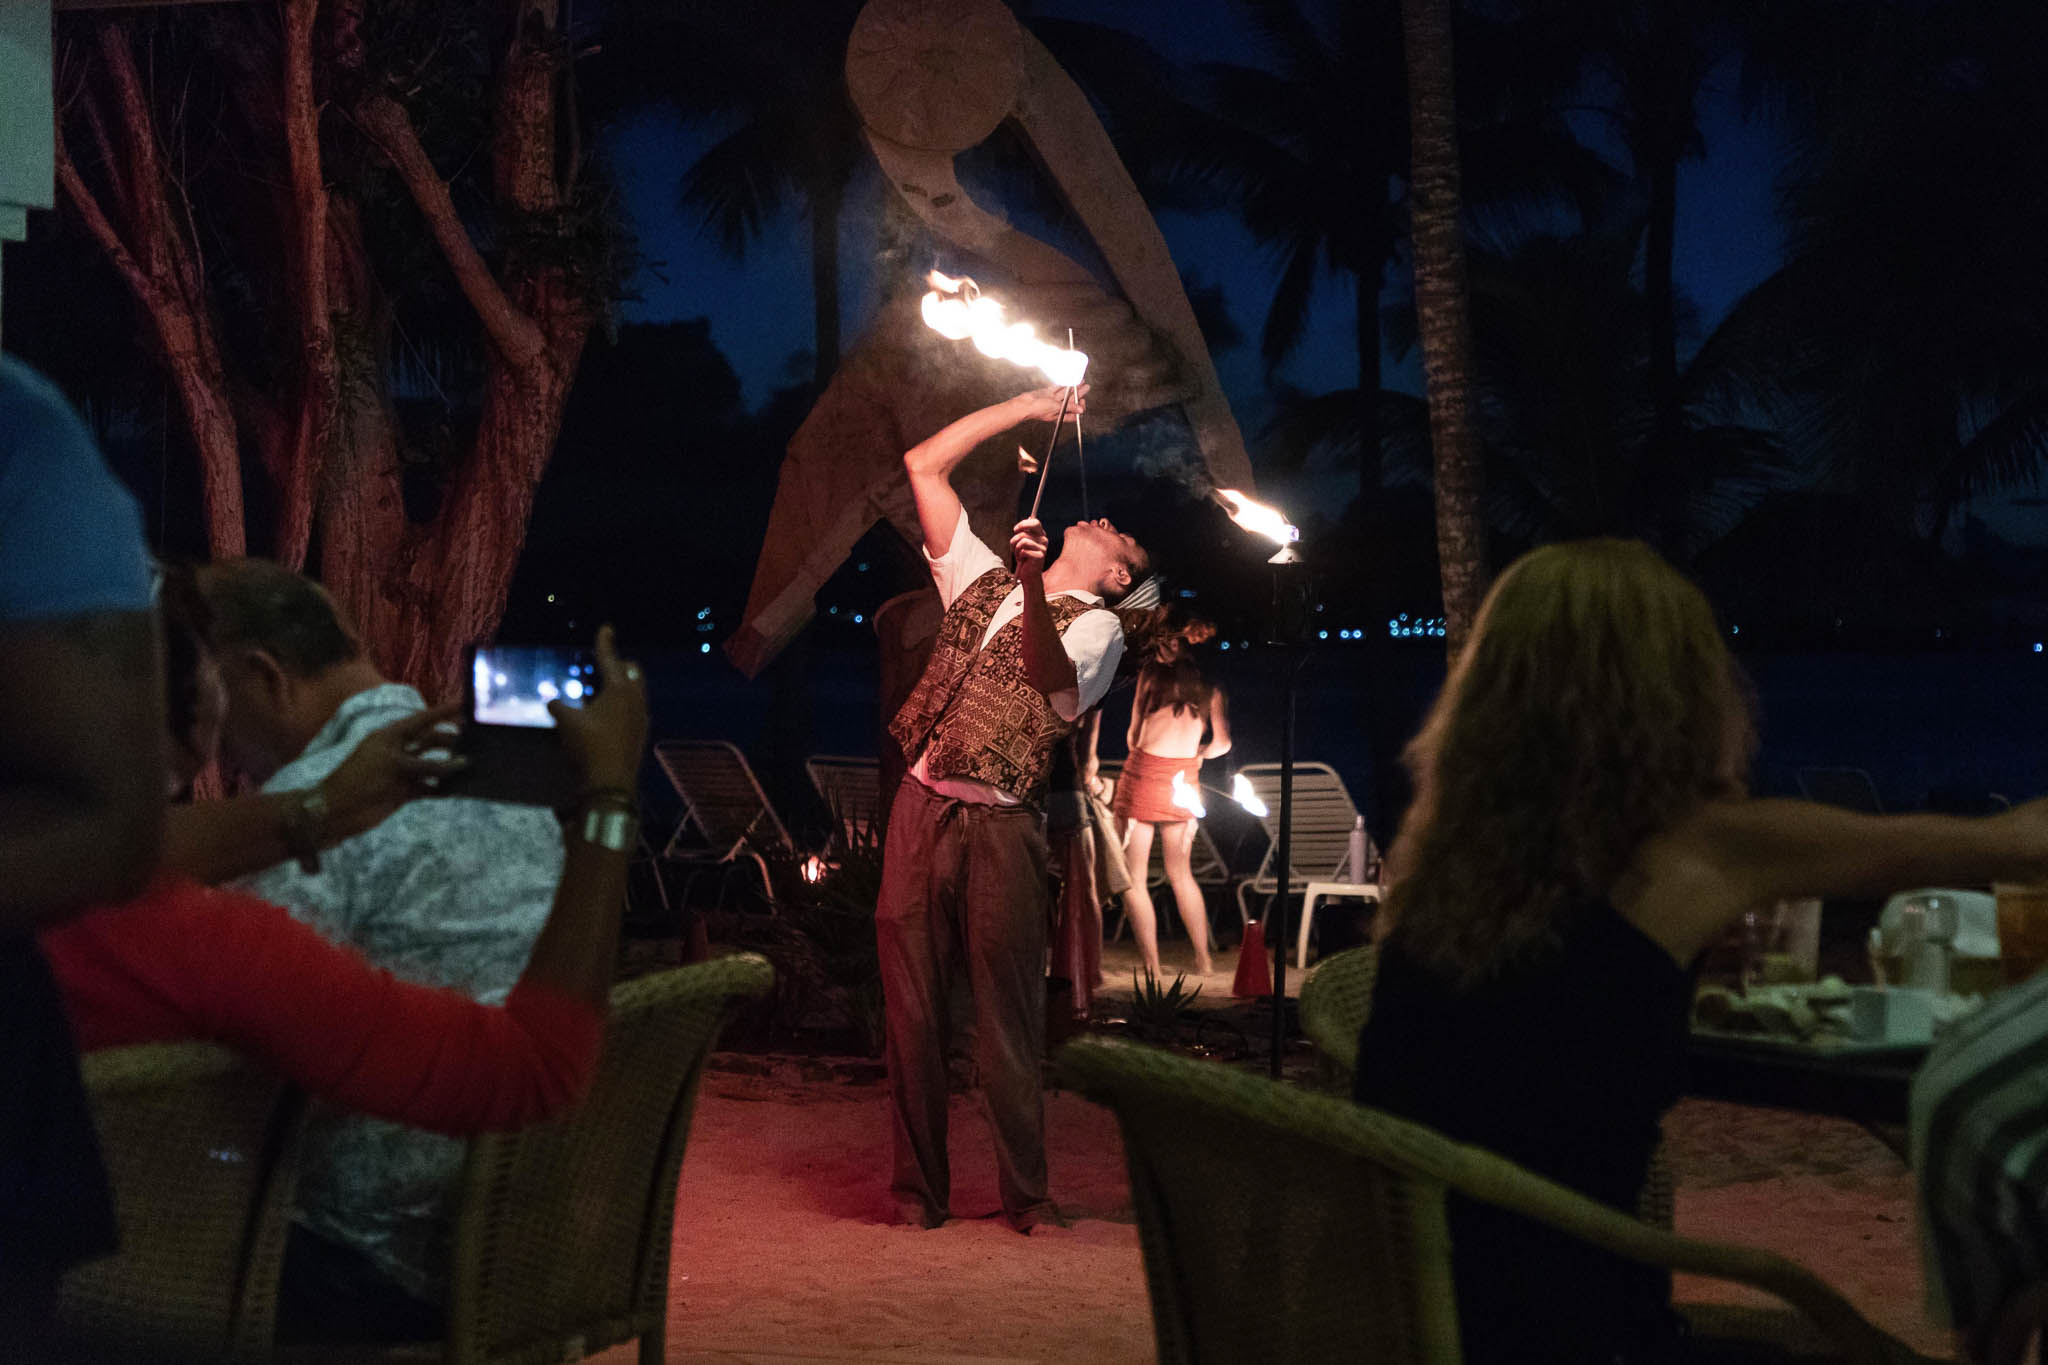 The fire dancers were amazing. I kept expecting someone's hair or mouth to catch on fire haha.